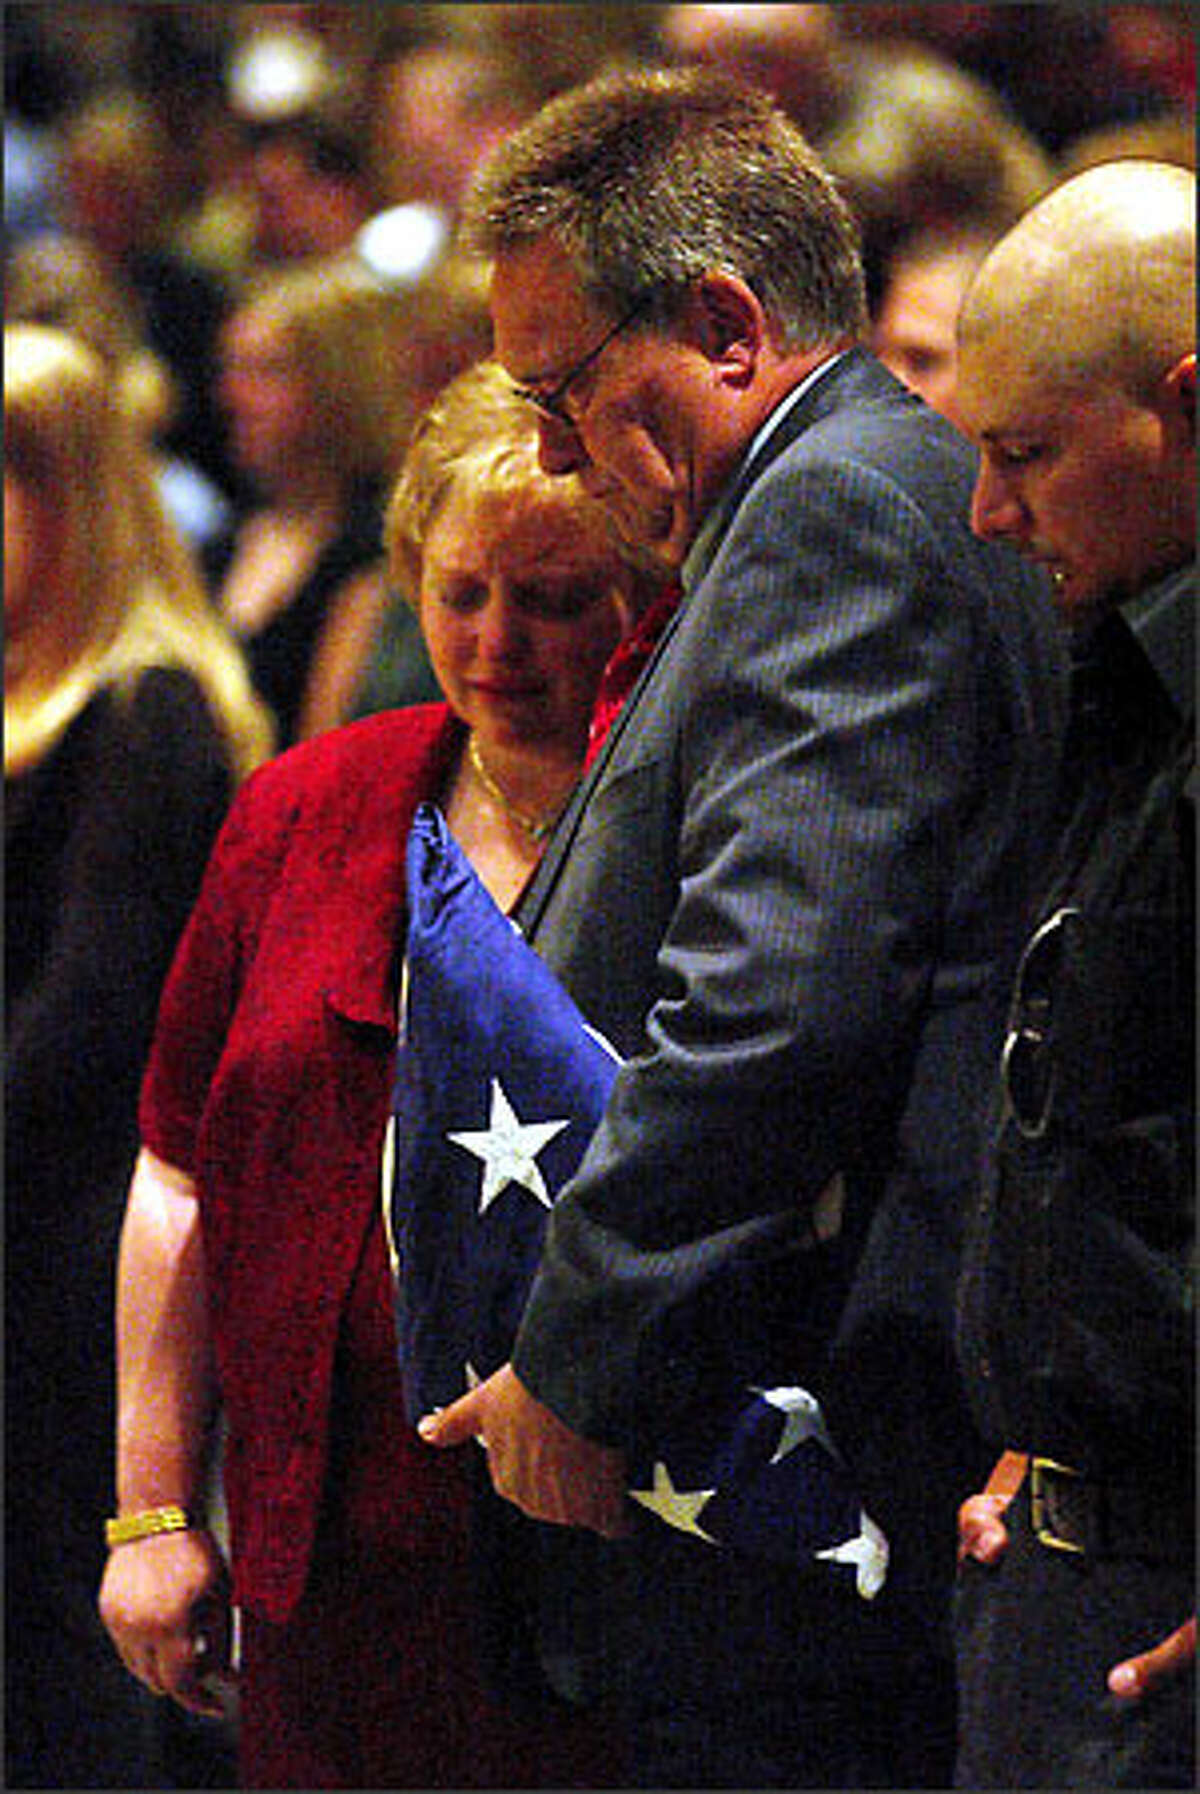 At a memorial service in Everett, David Calavan of Stanwood holds the flag that covered the grave of his son, Marine Pfc. Cody Calavan, who was killed May 29 while serving in Iraq. At left is Cody's stepmother, Pamela Calavan. Cody Calavan's name will be engraved on Stanwood's war memorial.